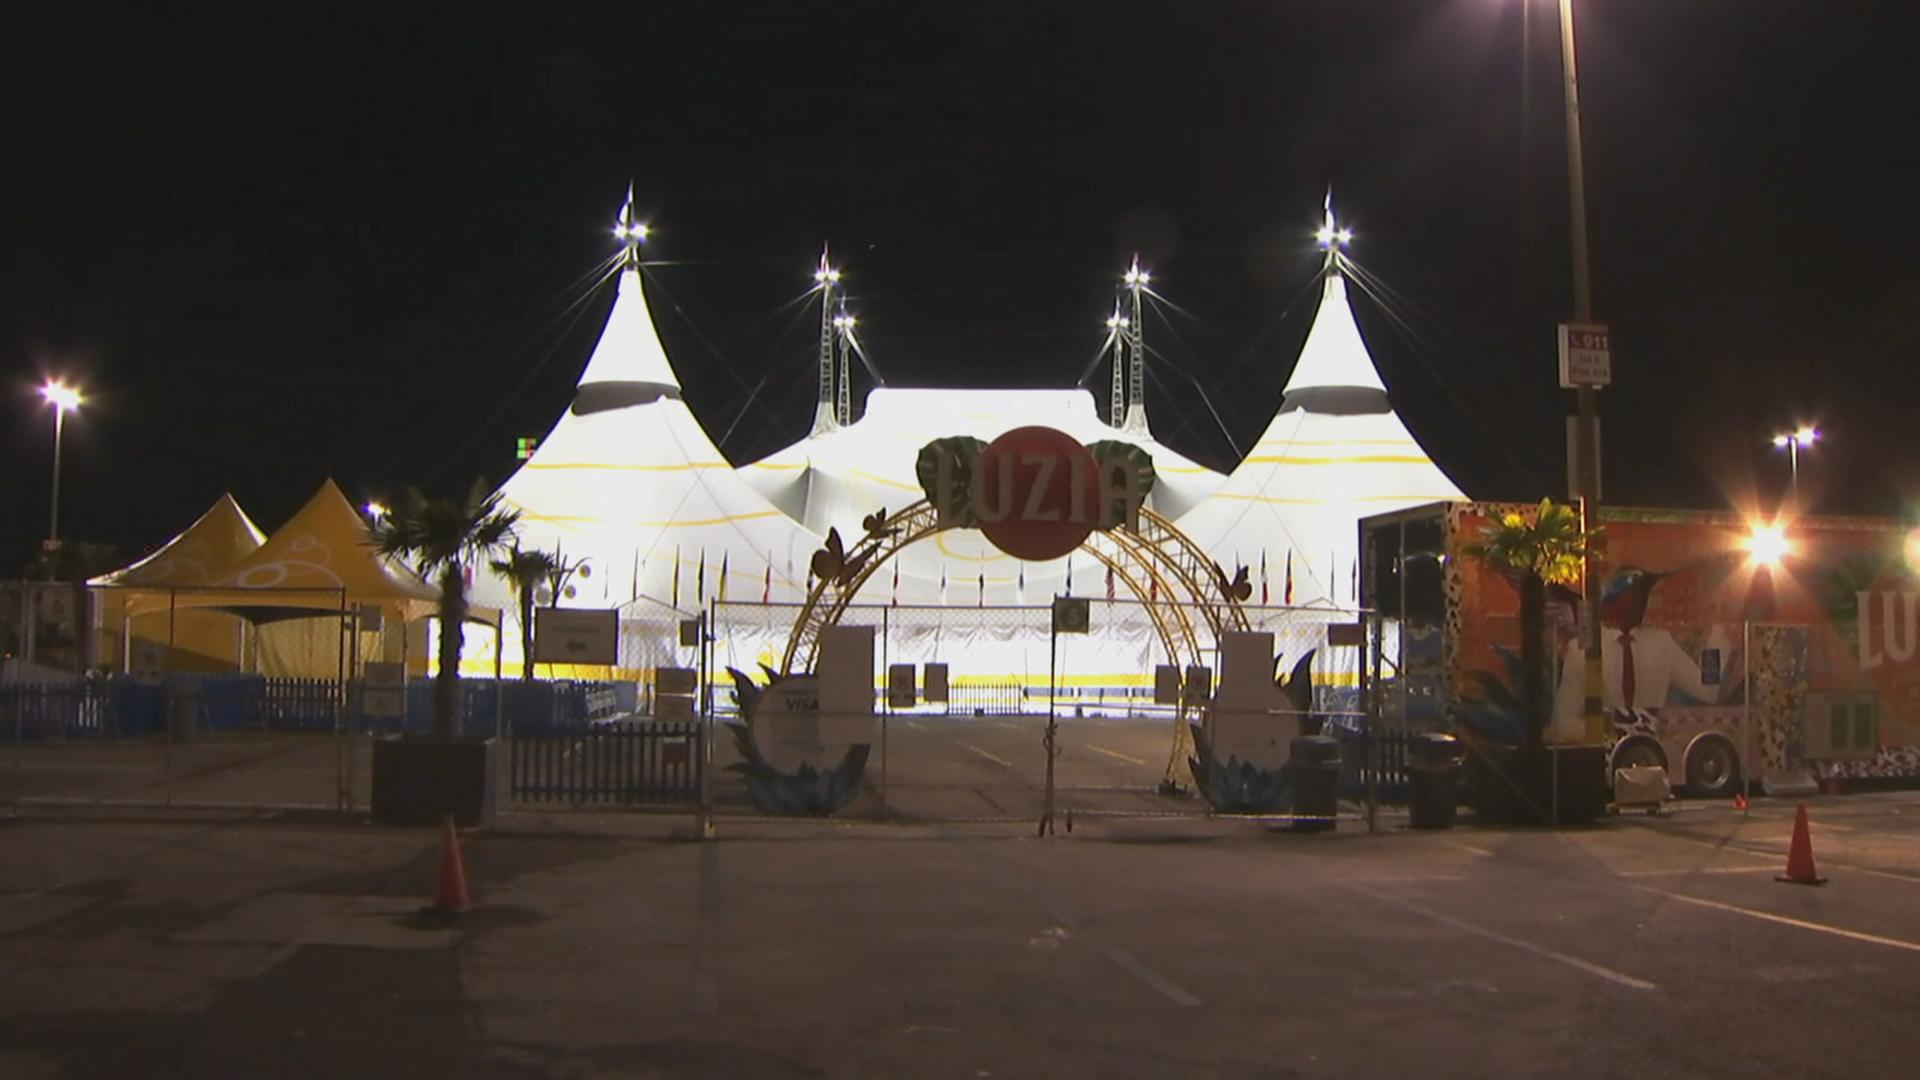 A worker suffered life-threatening injuries at a Cirque du Soleil rehearsal.